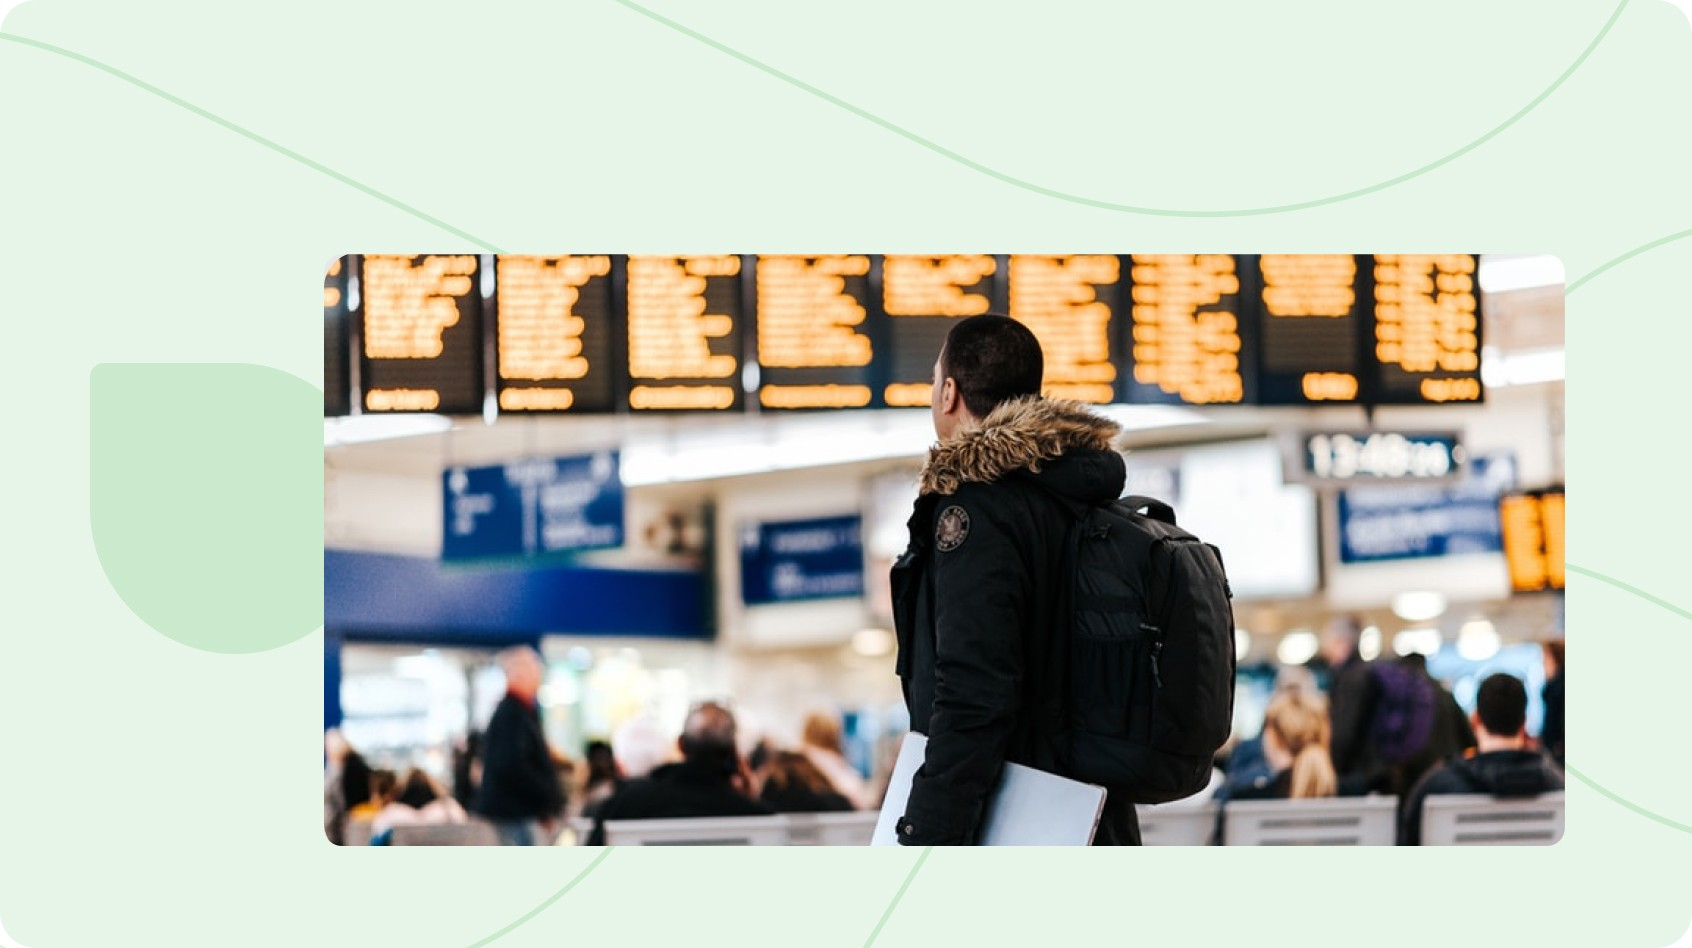 5 predictions for online travel companies in 2020